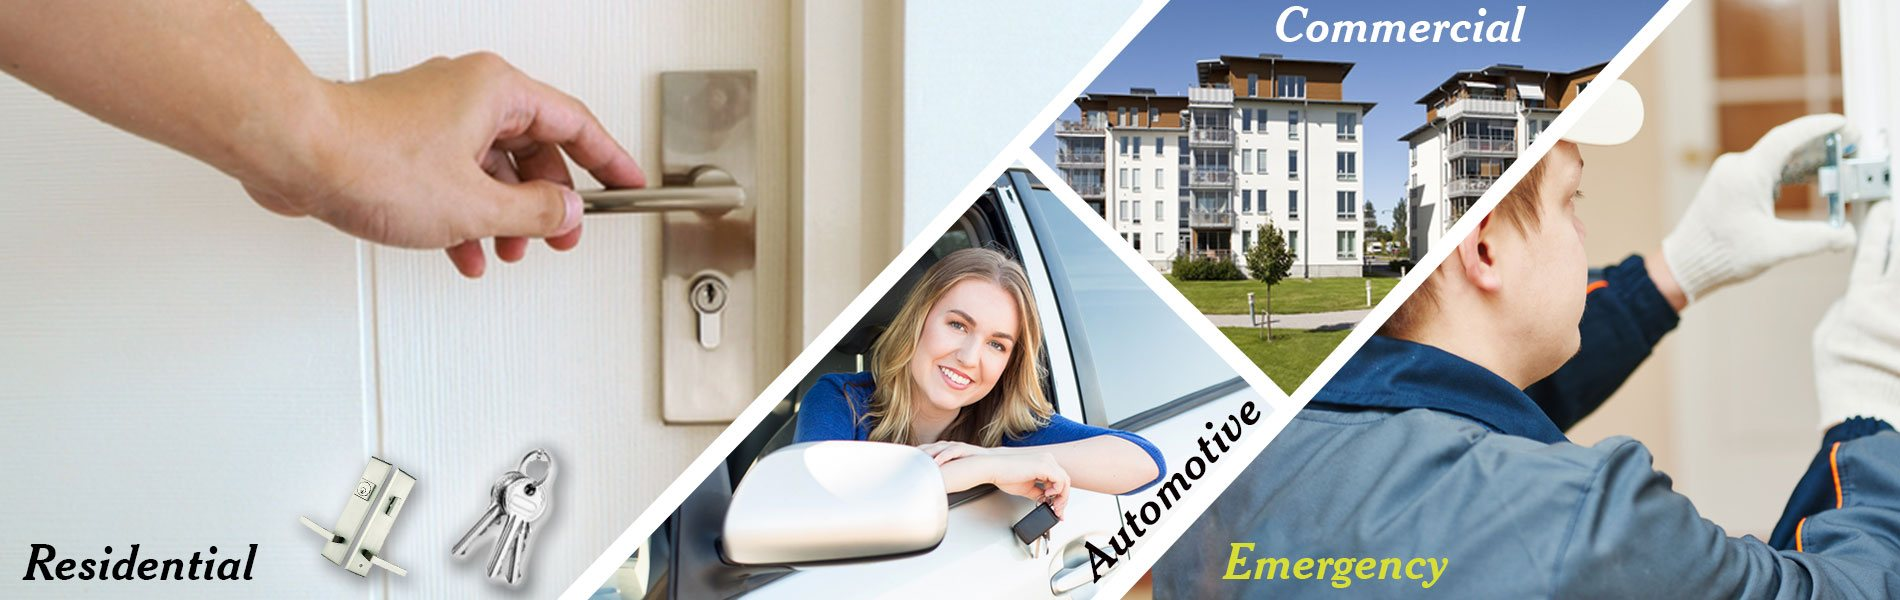 Safe Key Locksmith Service Atherton, CA 650-651-3439